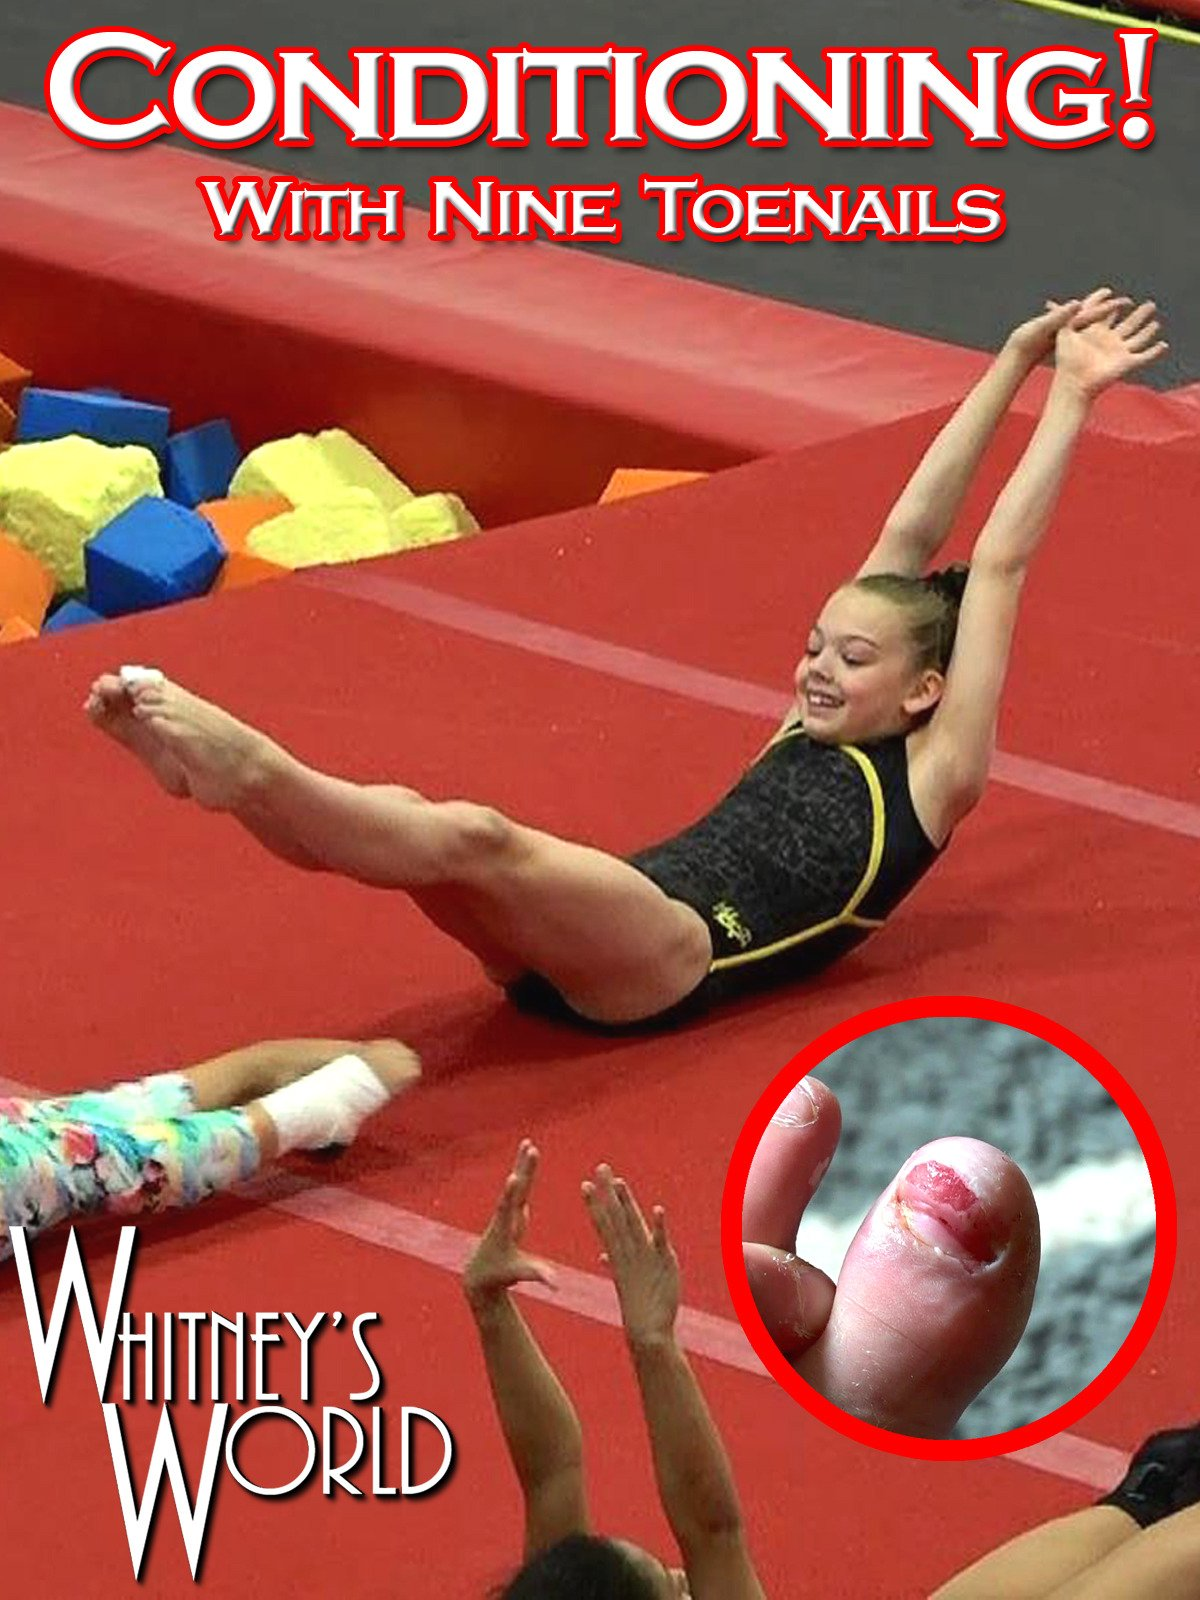 Conditioning! With Nine Toenails